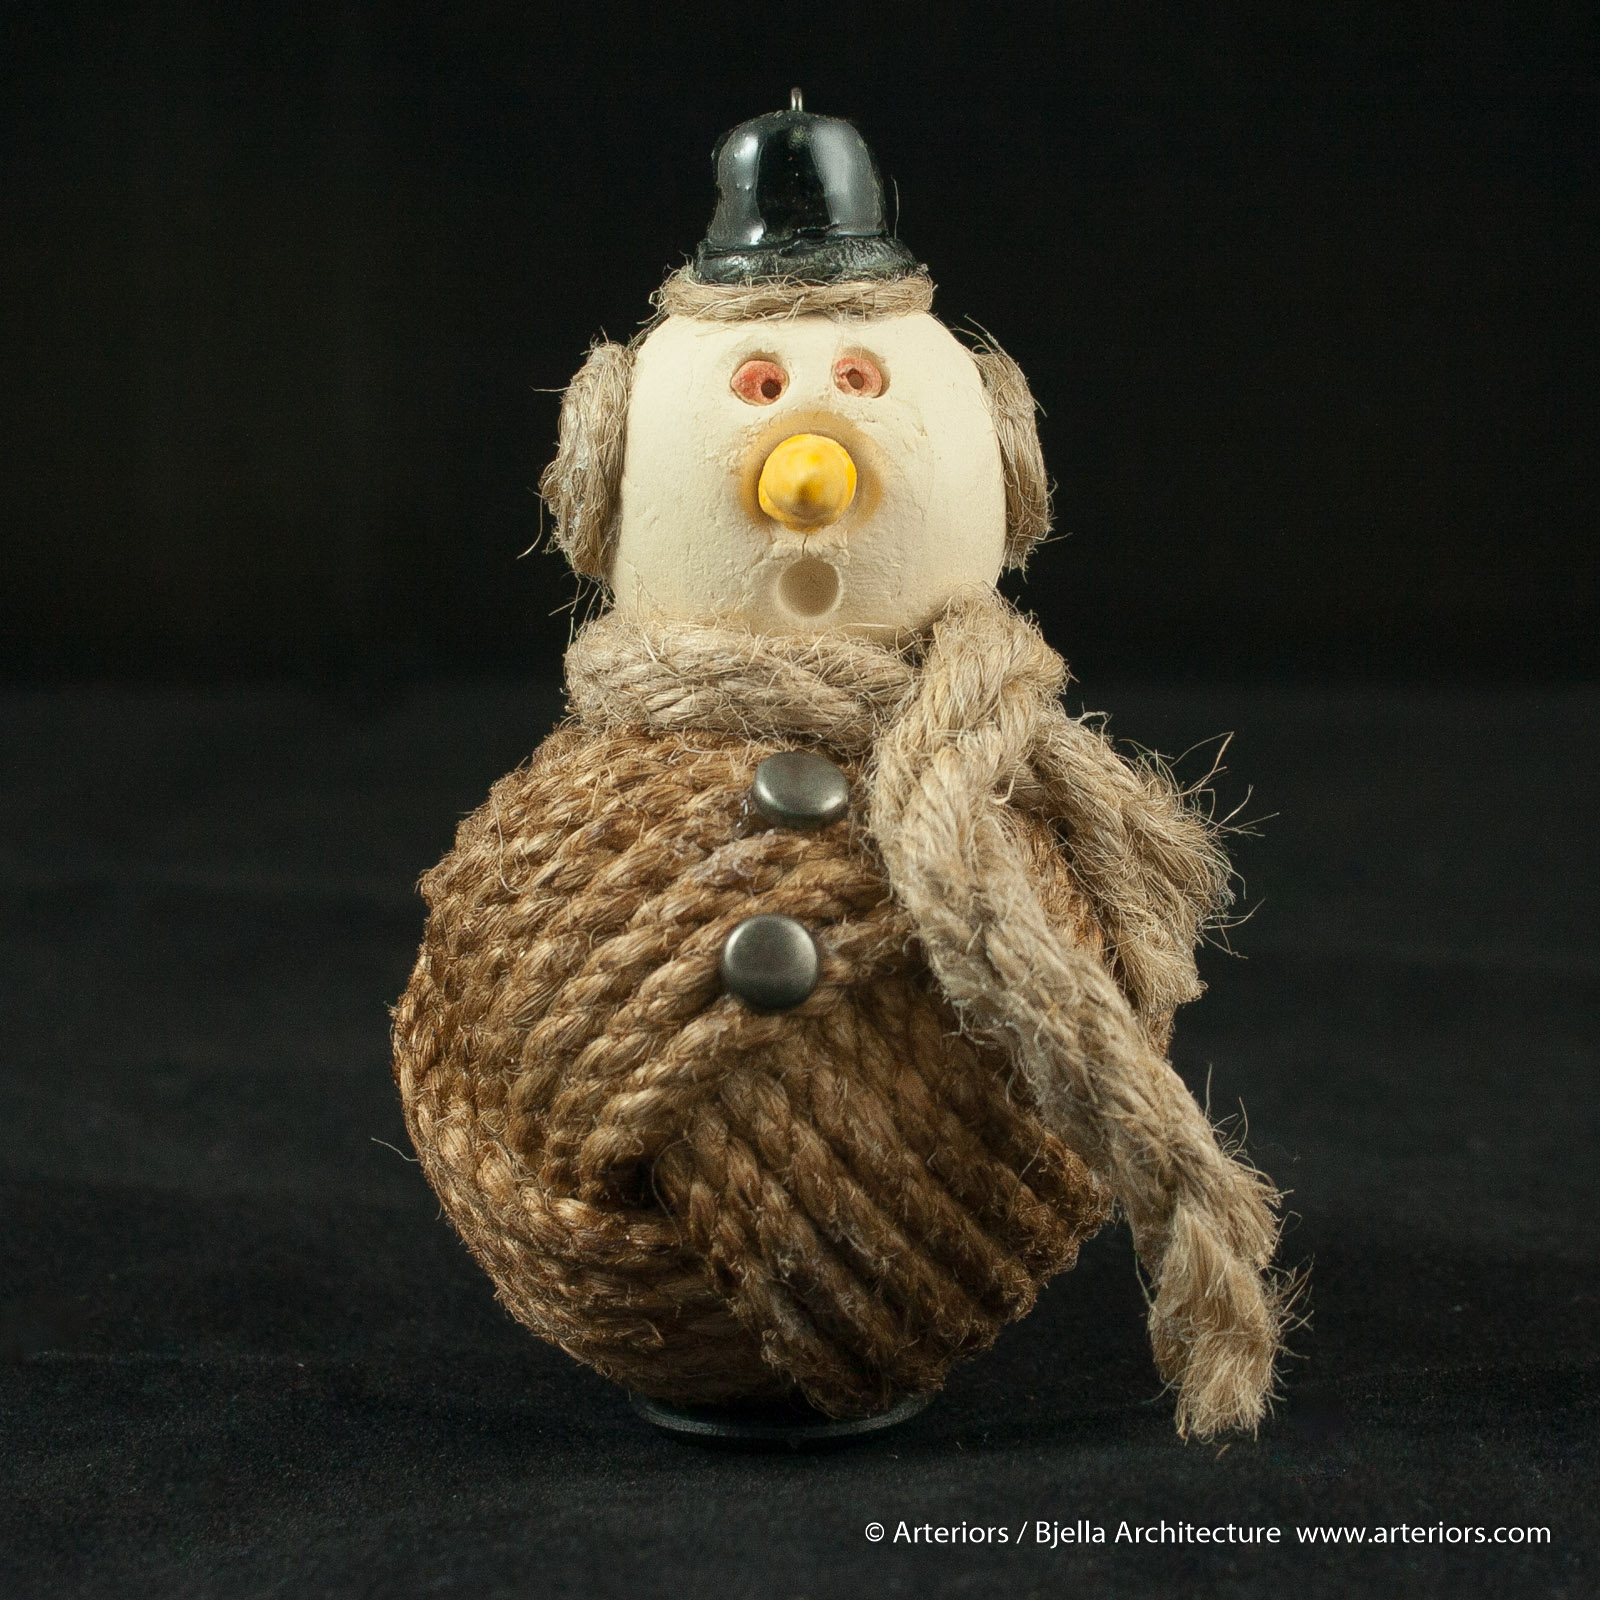 Bjella Snowman Ornament - Day 11 - Rope-6